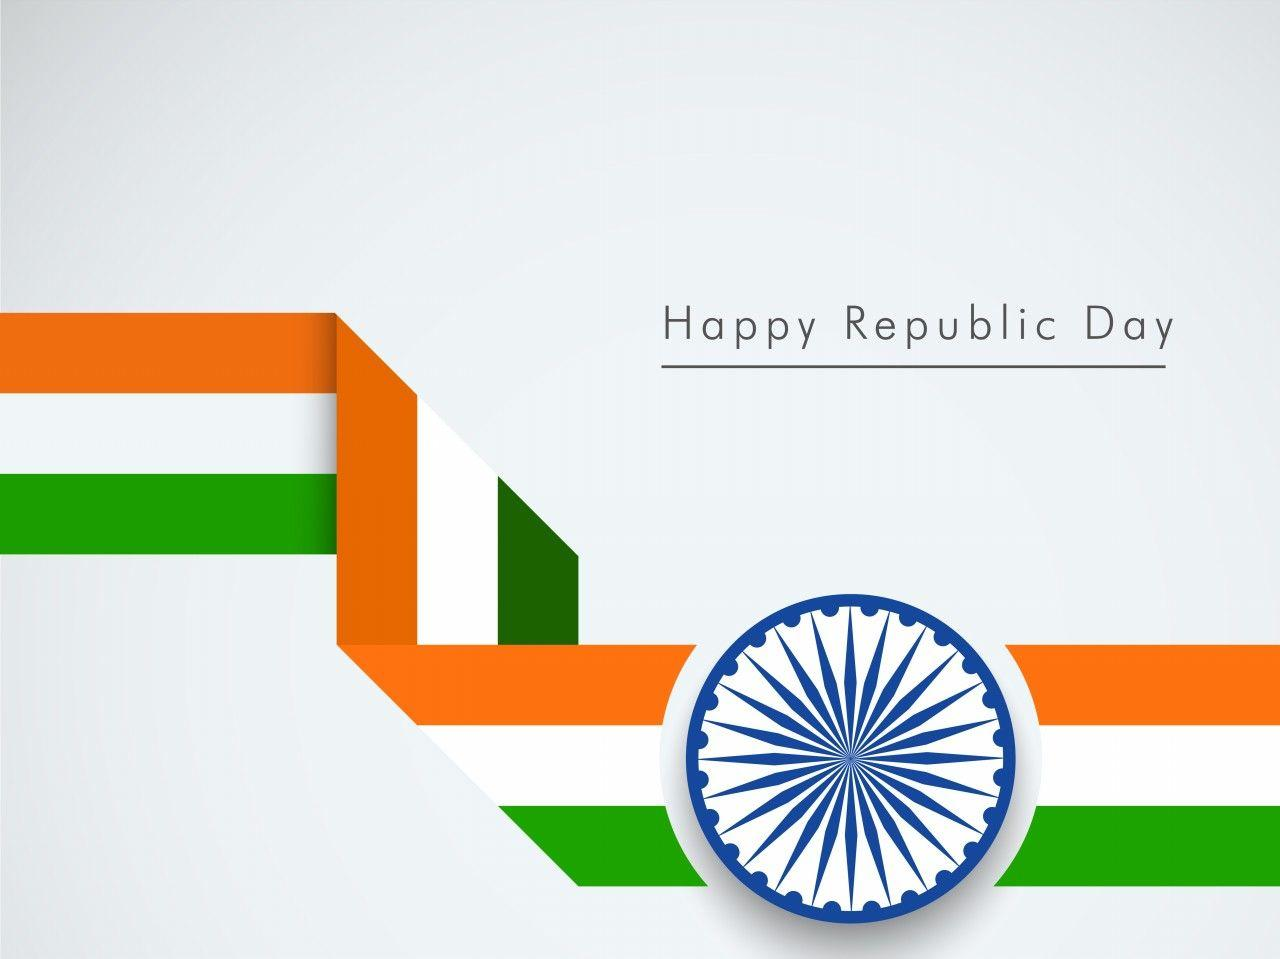 Happy Indian Republic Day. HQ Cards Image & Free HD Wallpapers